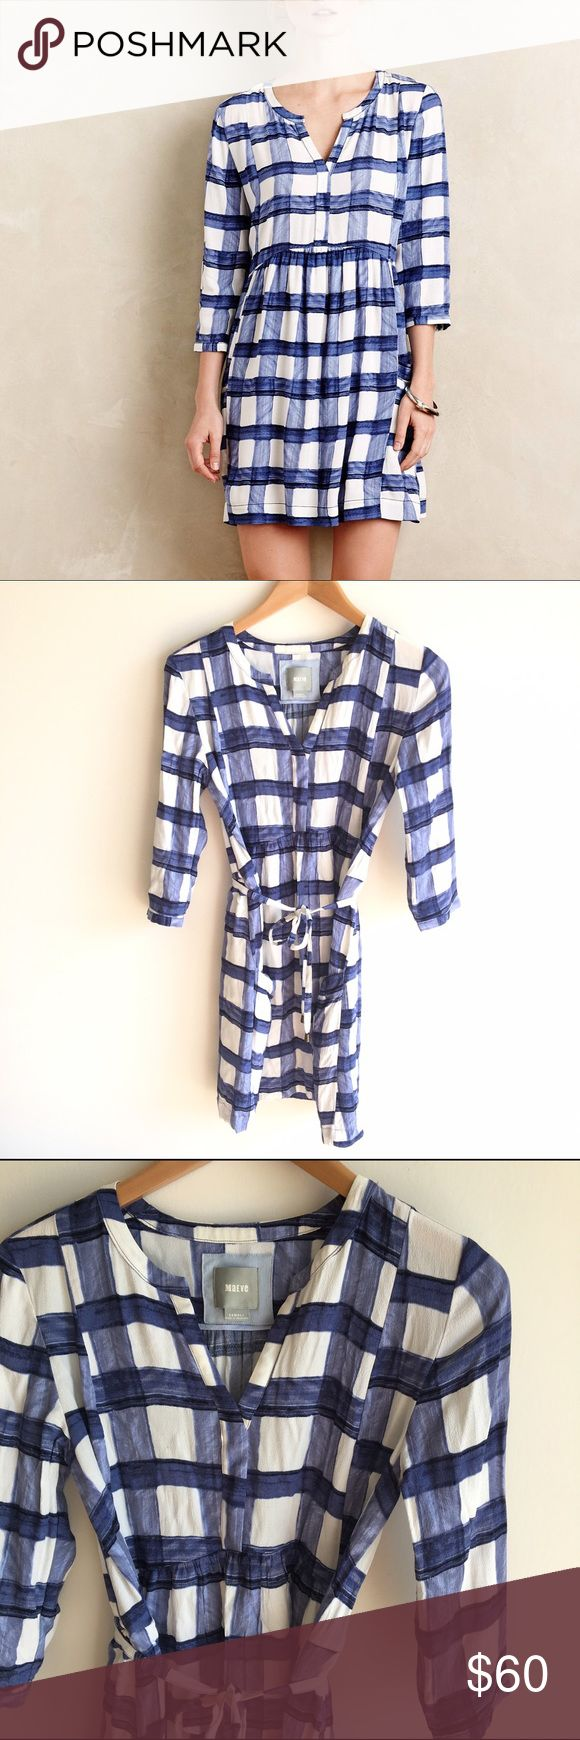 Anthropologie Maeve Devery Blue Plaid Dress Blue and white plaid, tie waist 3/4 length sleeve dress with pockets. EUC! Anthropologie Dresses Long Sleeve